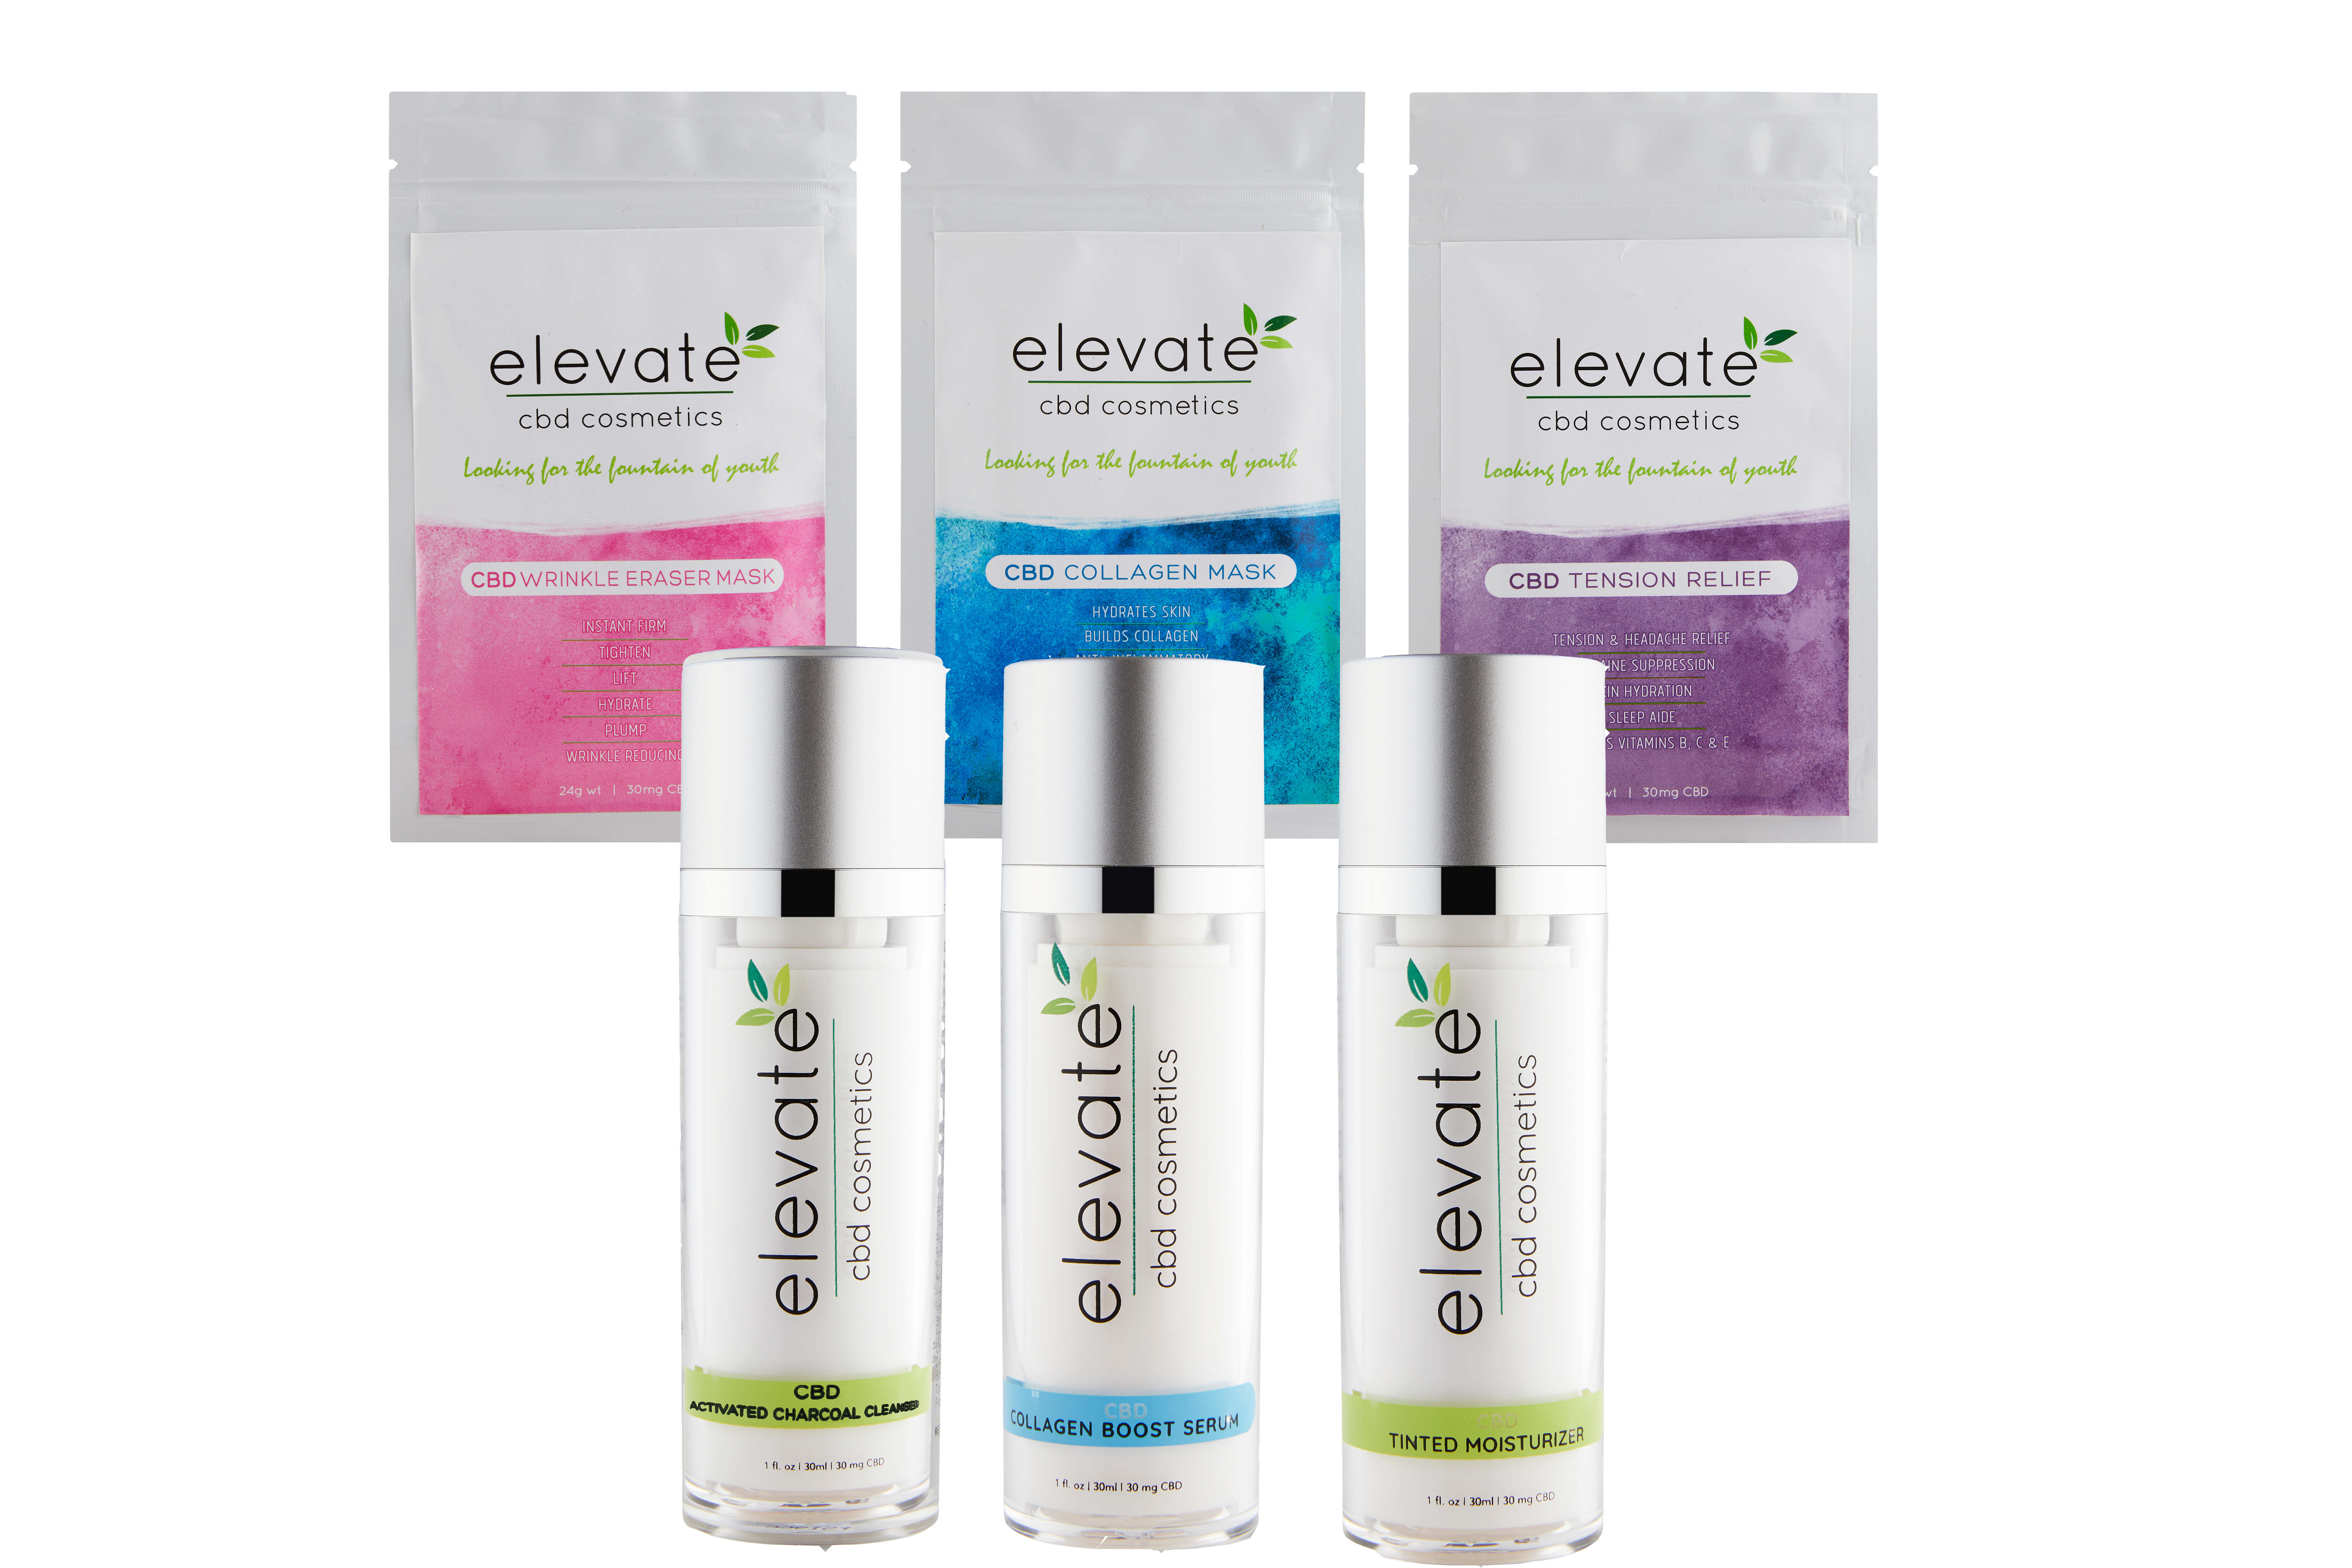 Elevate Skin Care Collection (in pouch) $134 vs $160 (save $26)